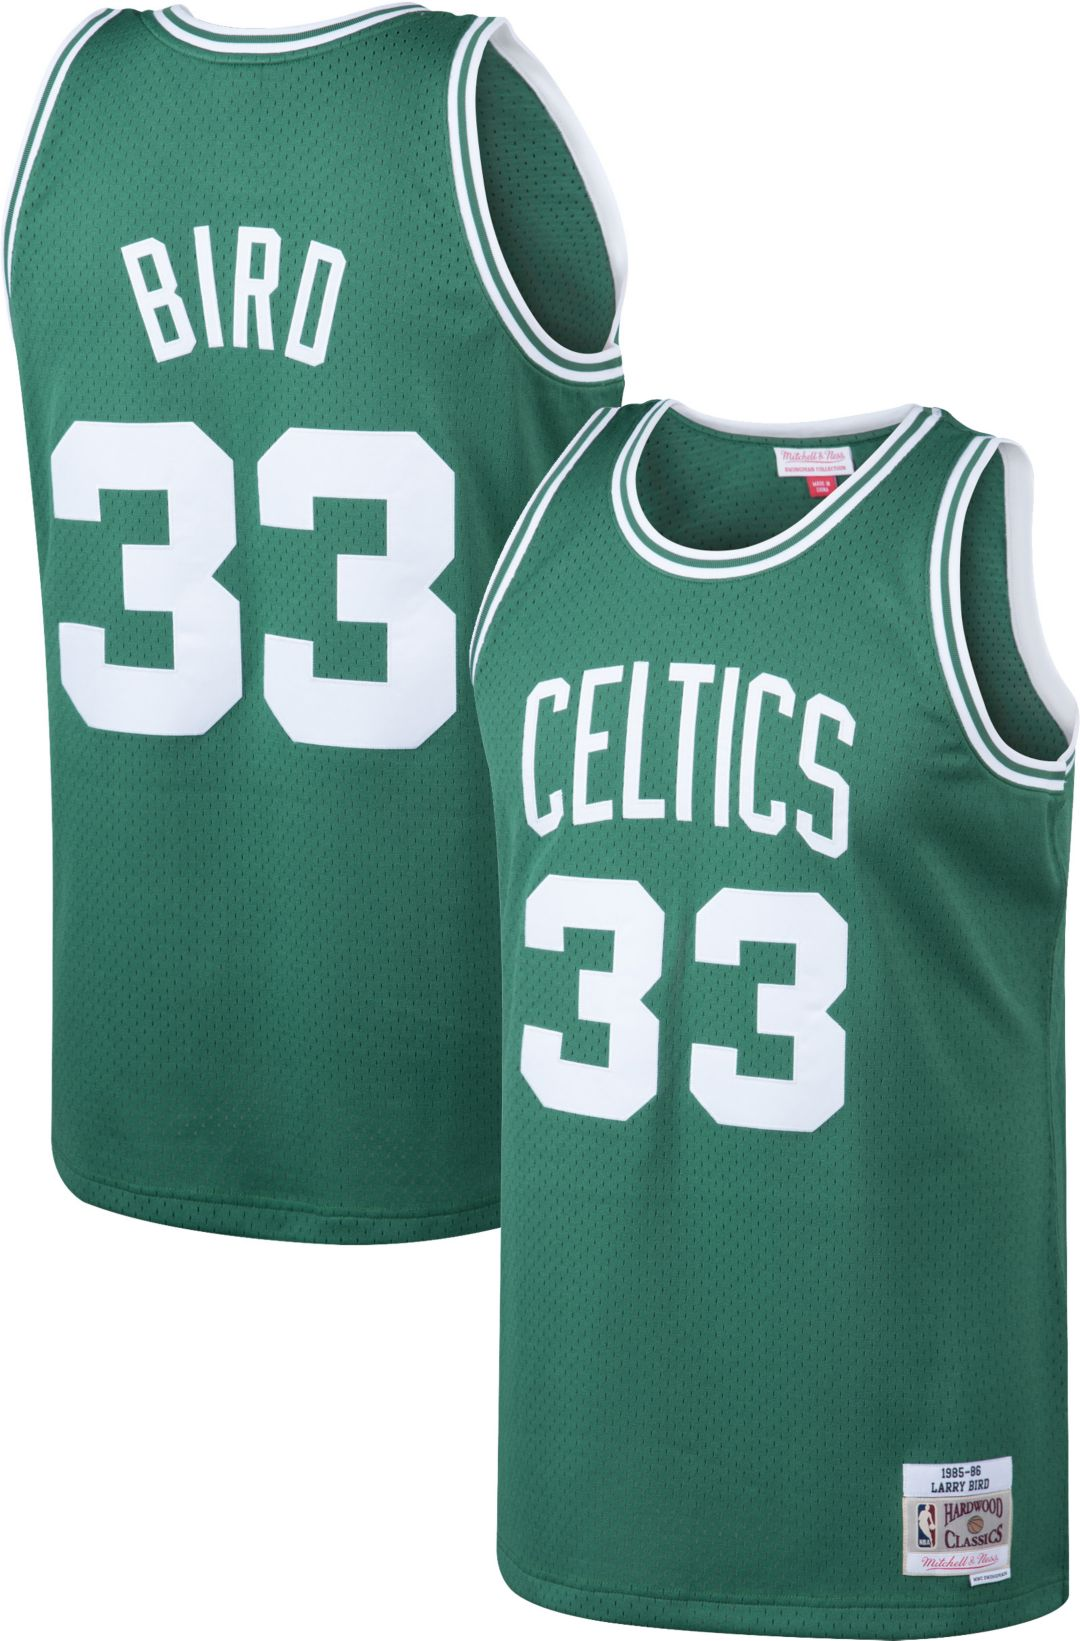 buy online 8e343 365d5 Mitchell & Ness Men's Boston Celtics Larry Bird #33 Swingman Jersey